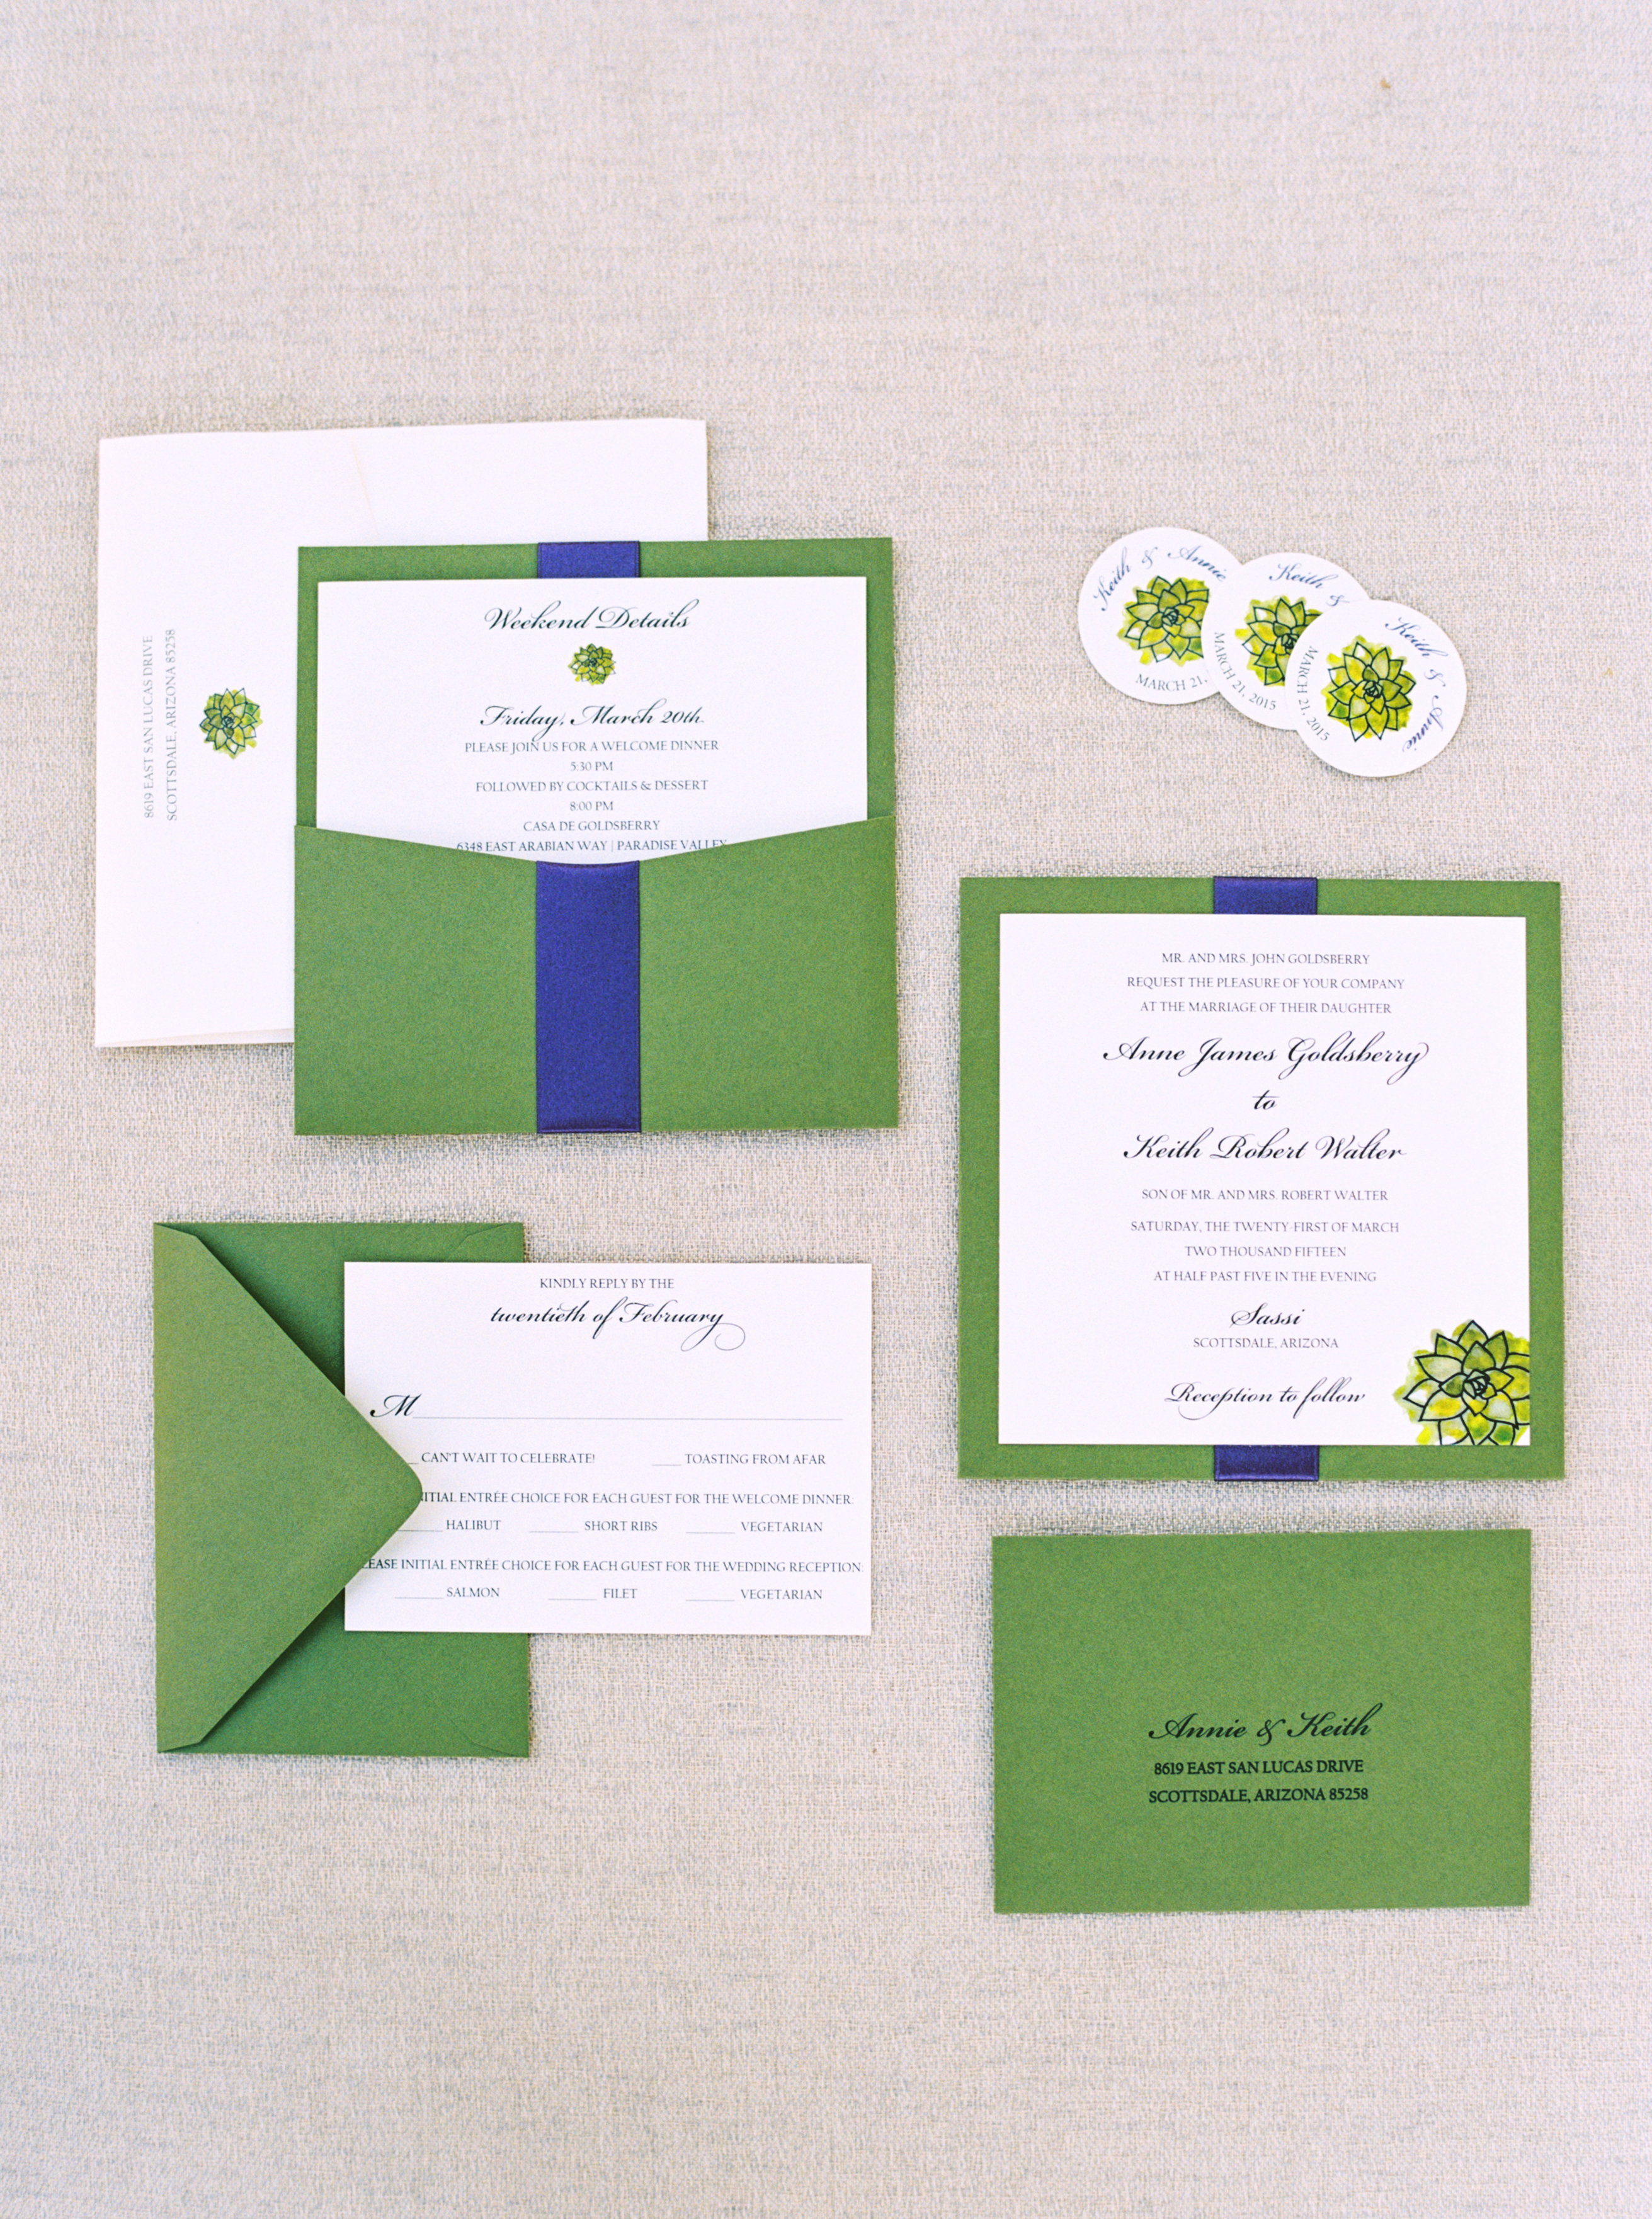 Green and Blue Wedding Invitations - Elizabeth Anne Designs: The ...